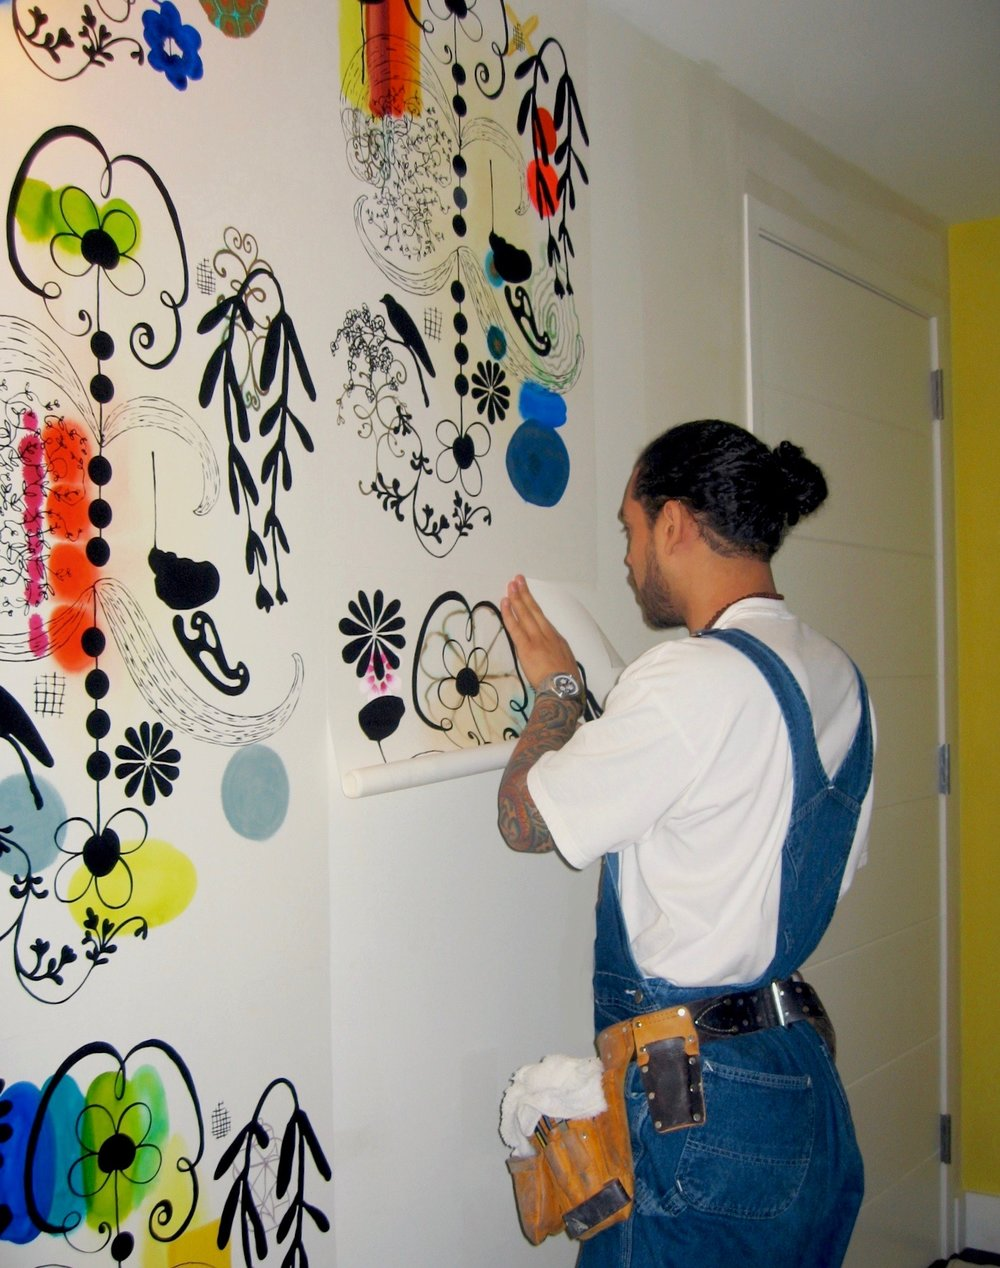 FRENCH DOT full wall installation. Paper install and photo thanks to EloquentTouch.com NYC